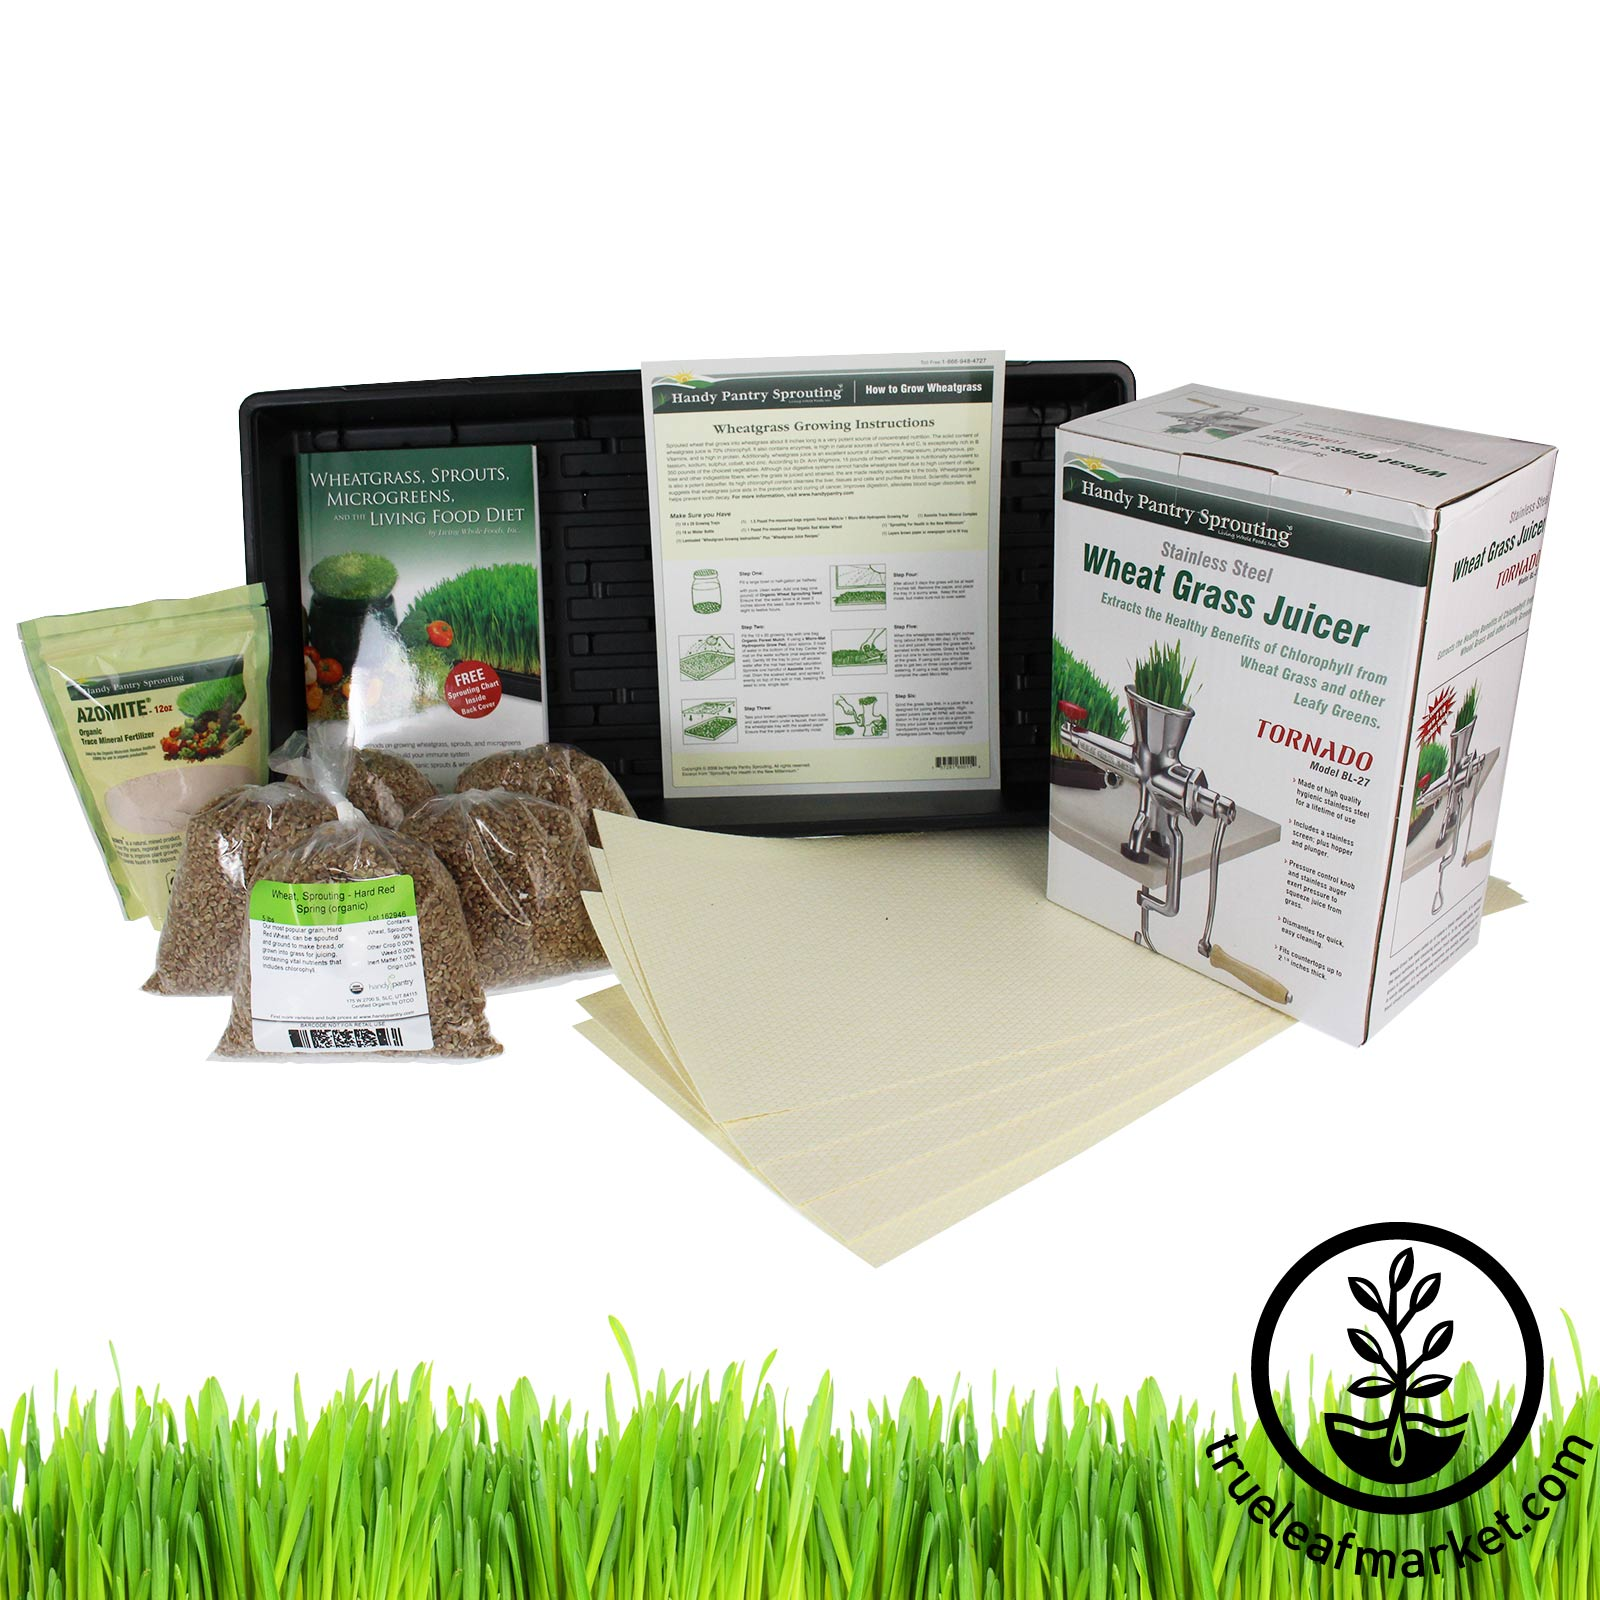 Hydroponic Wheatgrass Kit + Tornado Juicer wheat grass, wheatgrass, wheatgrass juicers, wheat grass juicers, back to basics juicer, manual juicer, wheat seed, ann wigmore, wheatgrass kit, grow, growing, juicing, wheat grass juice, wheat grass seed, hydroponic, cocotec, tornado juicer